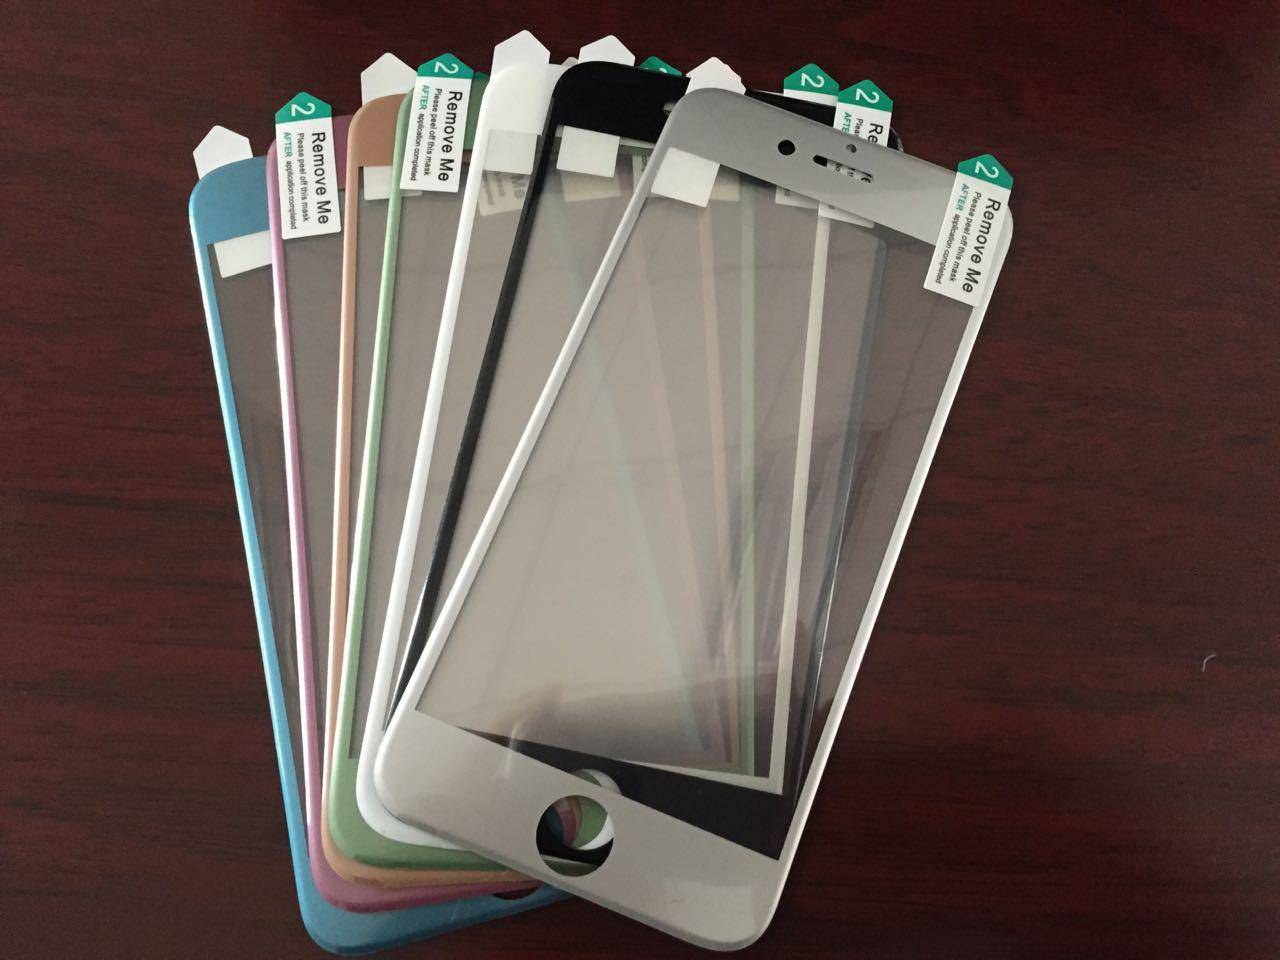 2.5D curved round screen protector for 4.7 inch Iphone 6